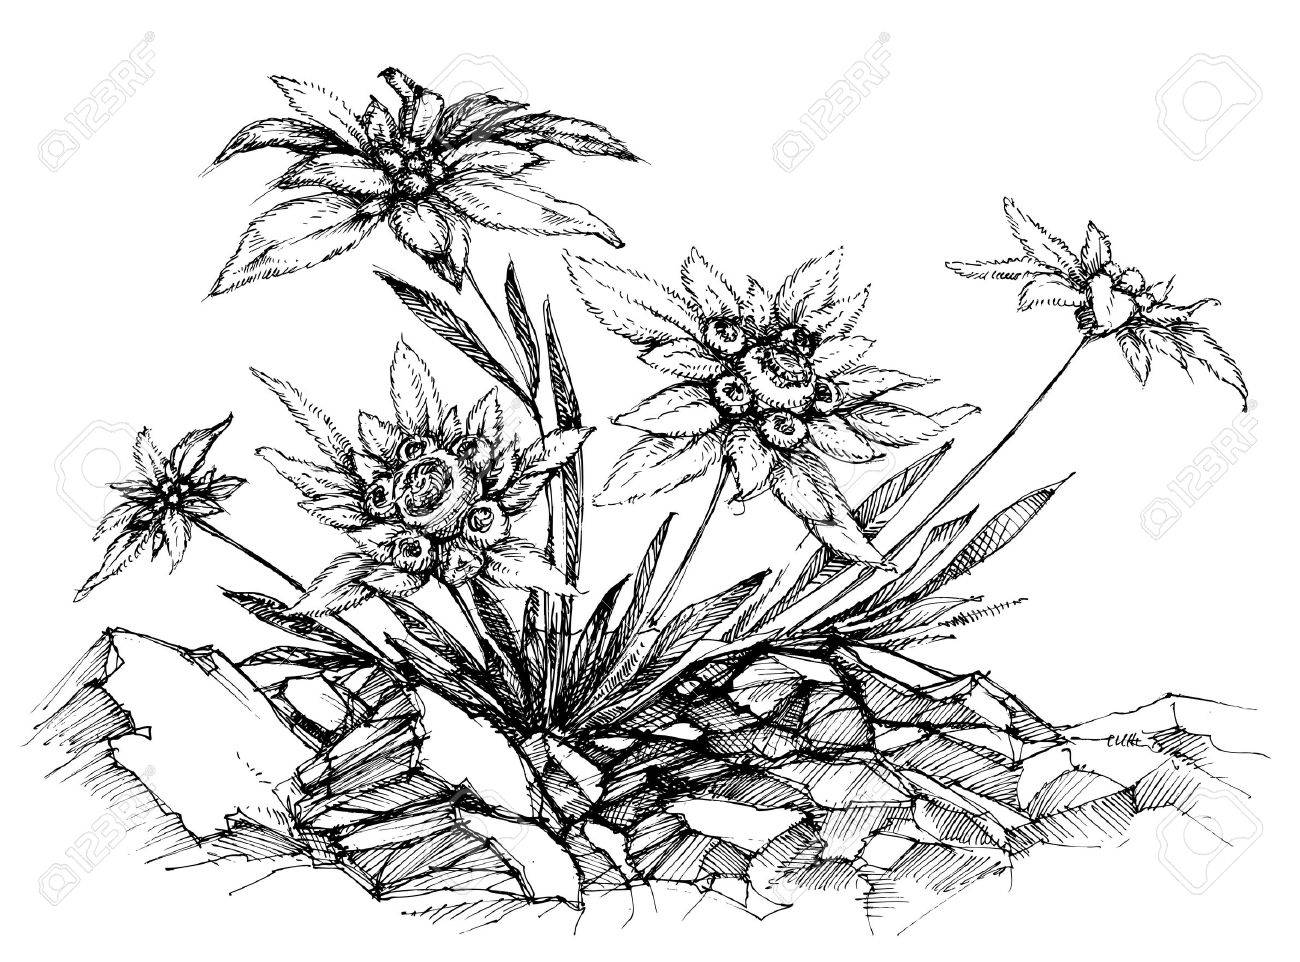 1300x962 Edelweiss Etch Royalty Free Cliparts, Vectors, And Stock